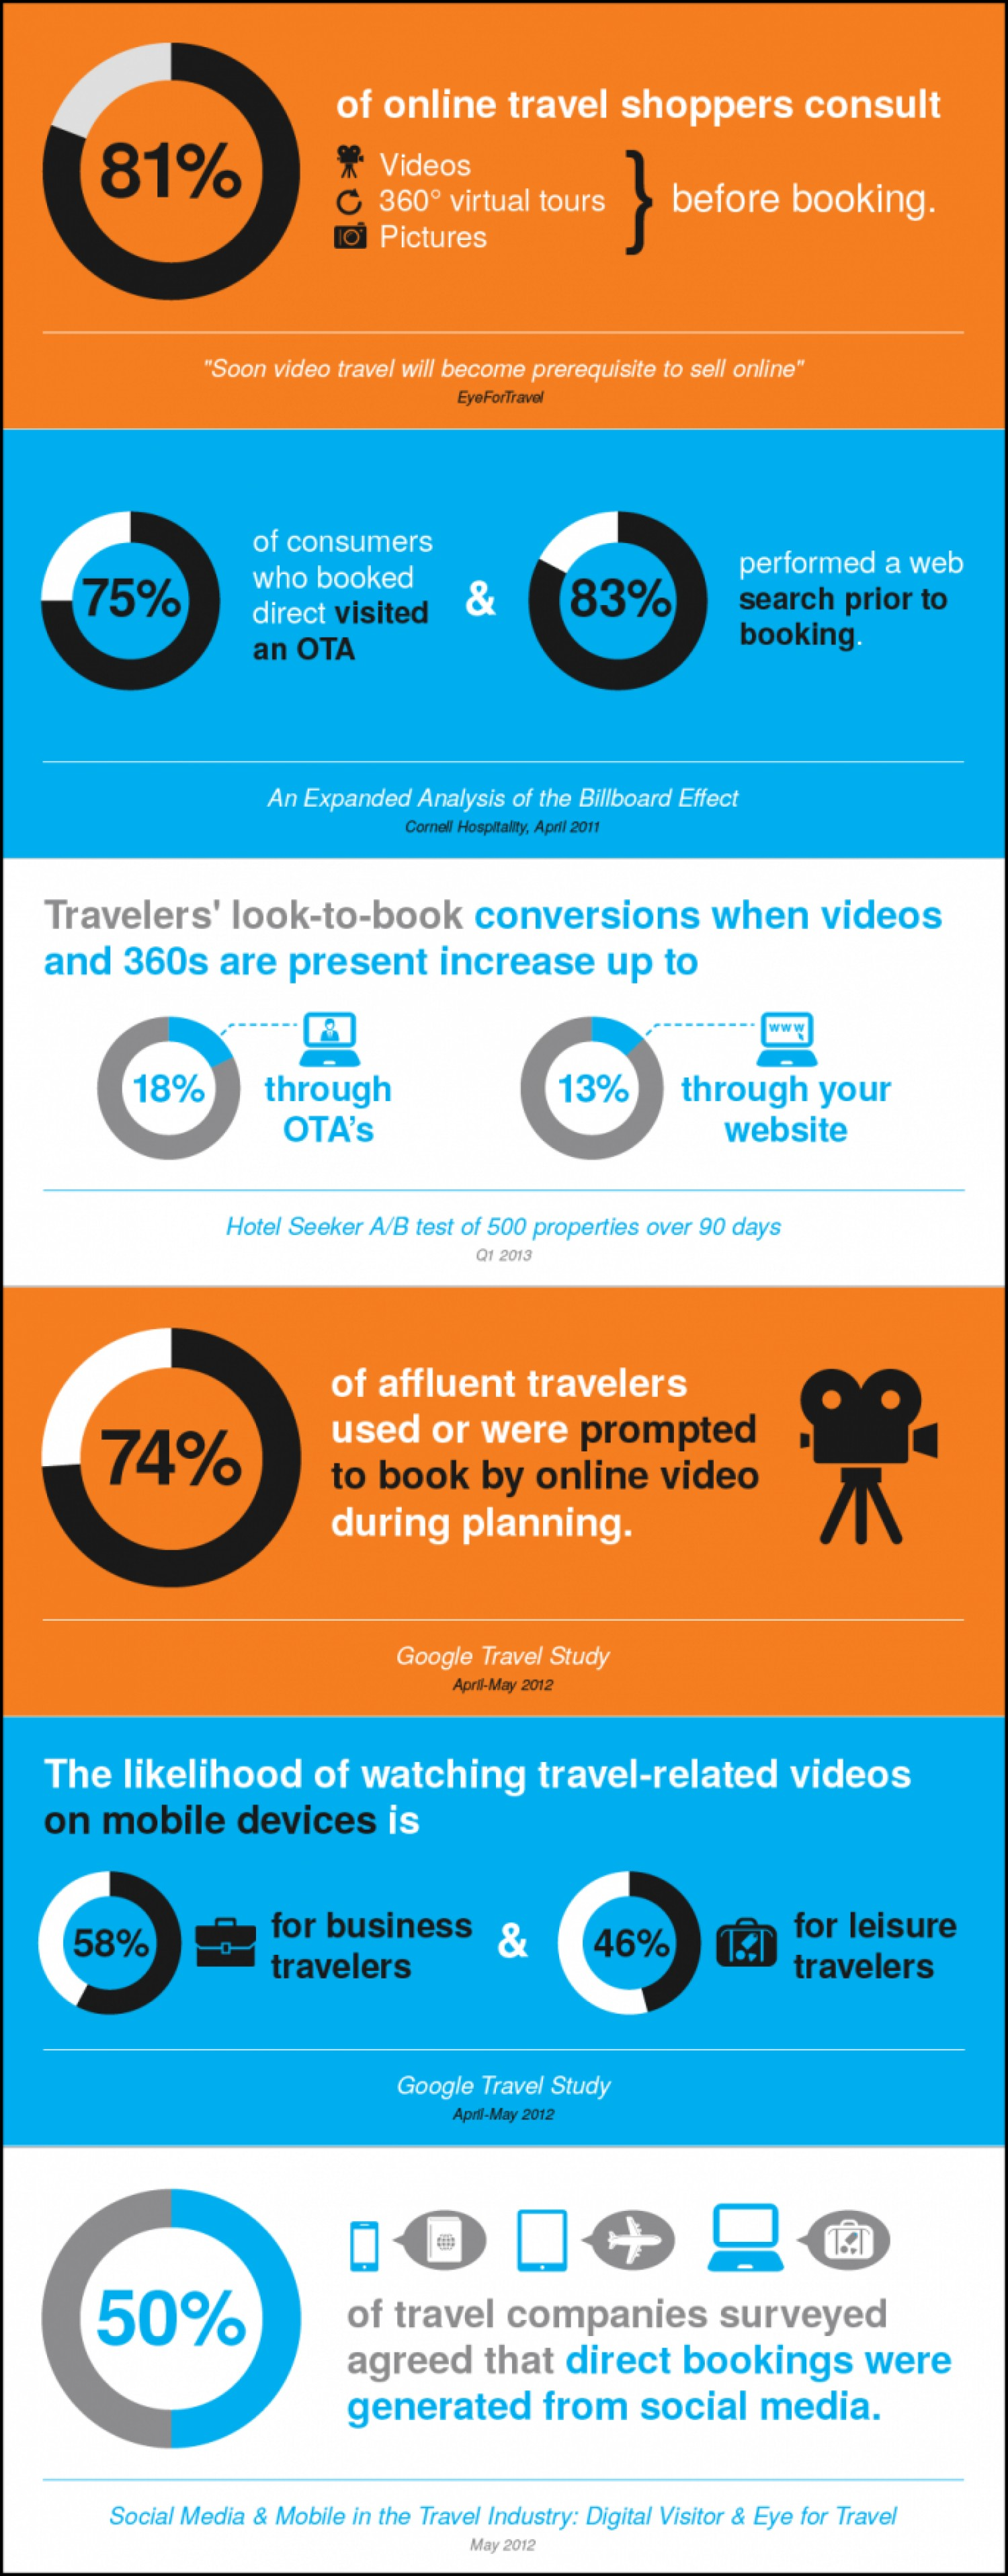 10. How photography and video effect sales